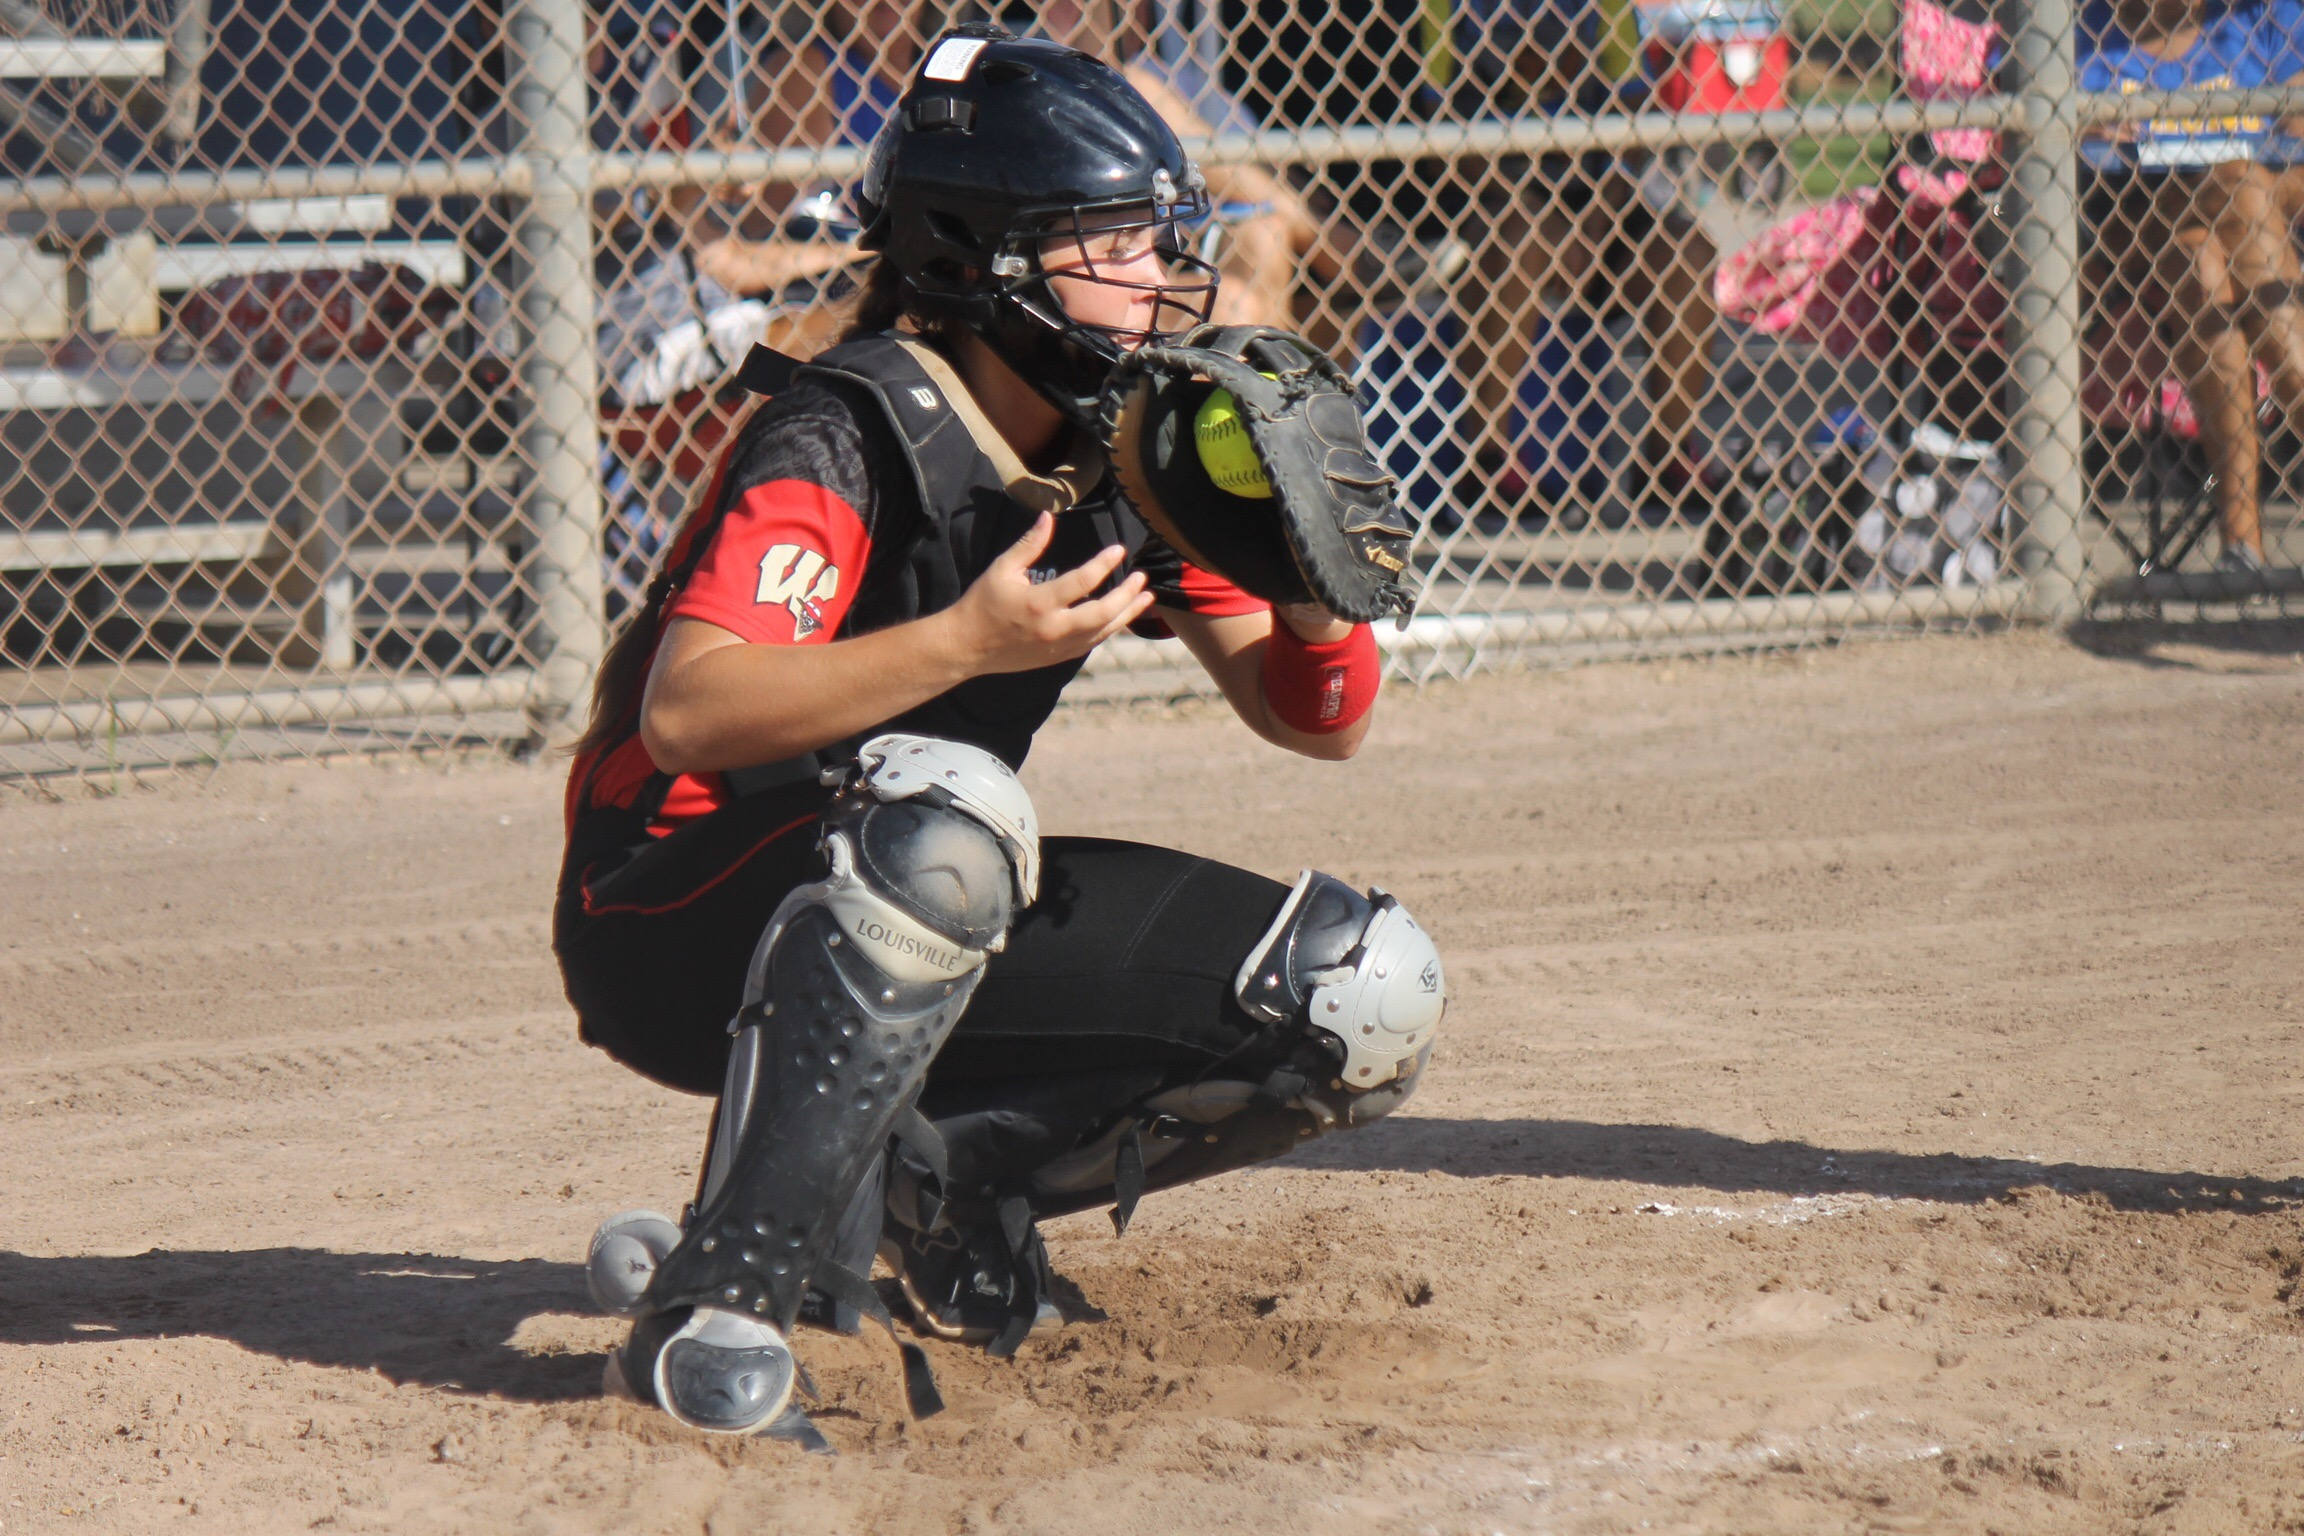 18U Red Looking for a Catcher